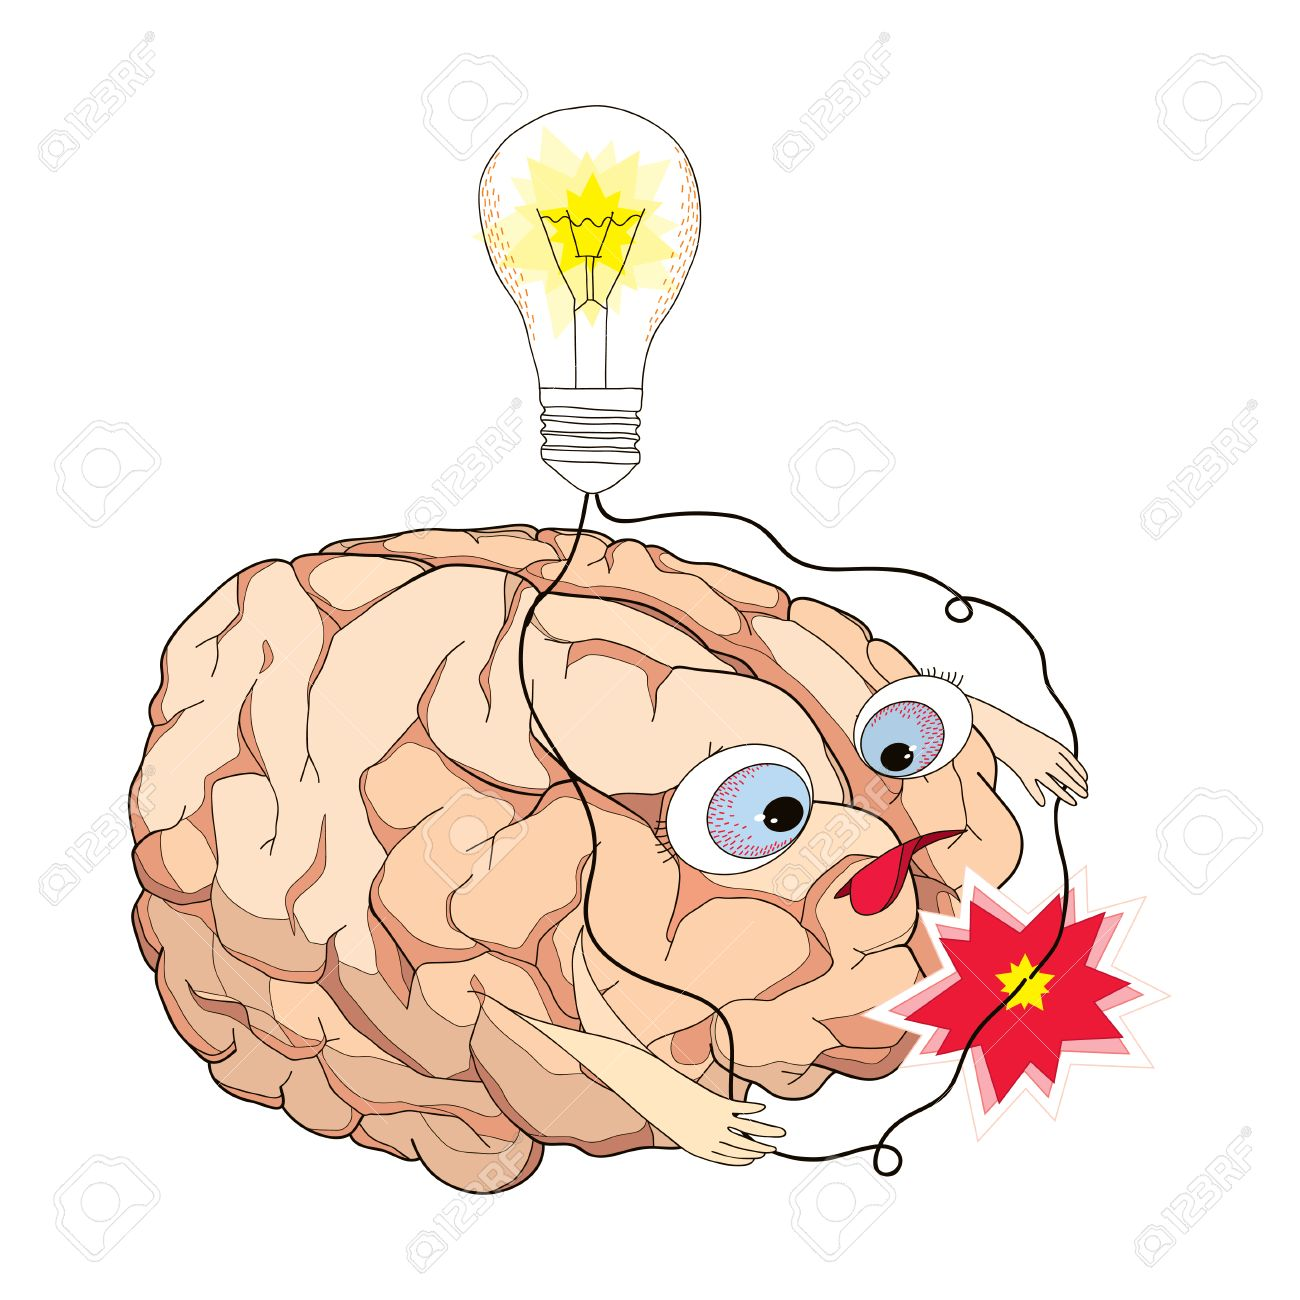 Cartoon Of Wiring The Brain Not Lossing Diagram Short Circuit With Turning Light Bulb And Wires In Rh 123rf Com Live